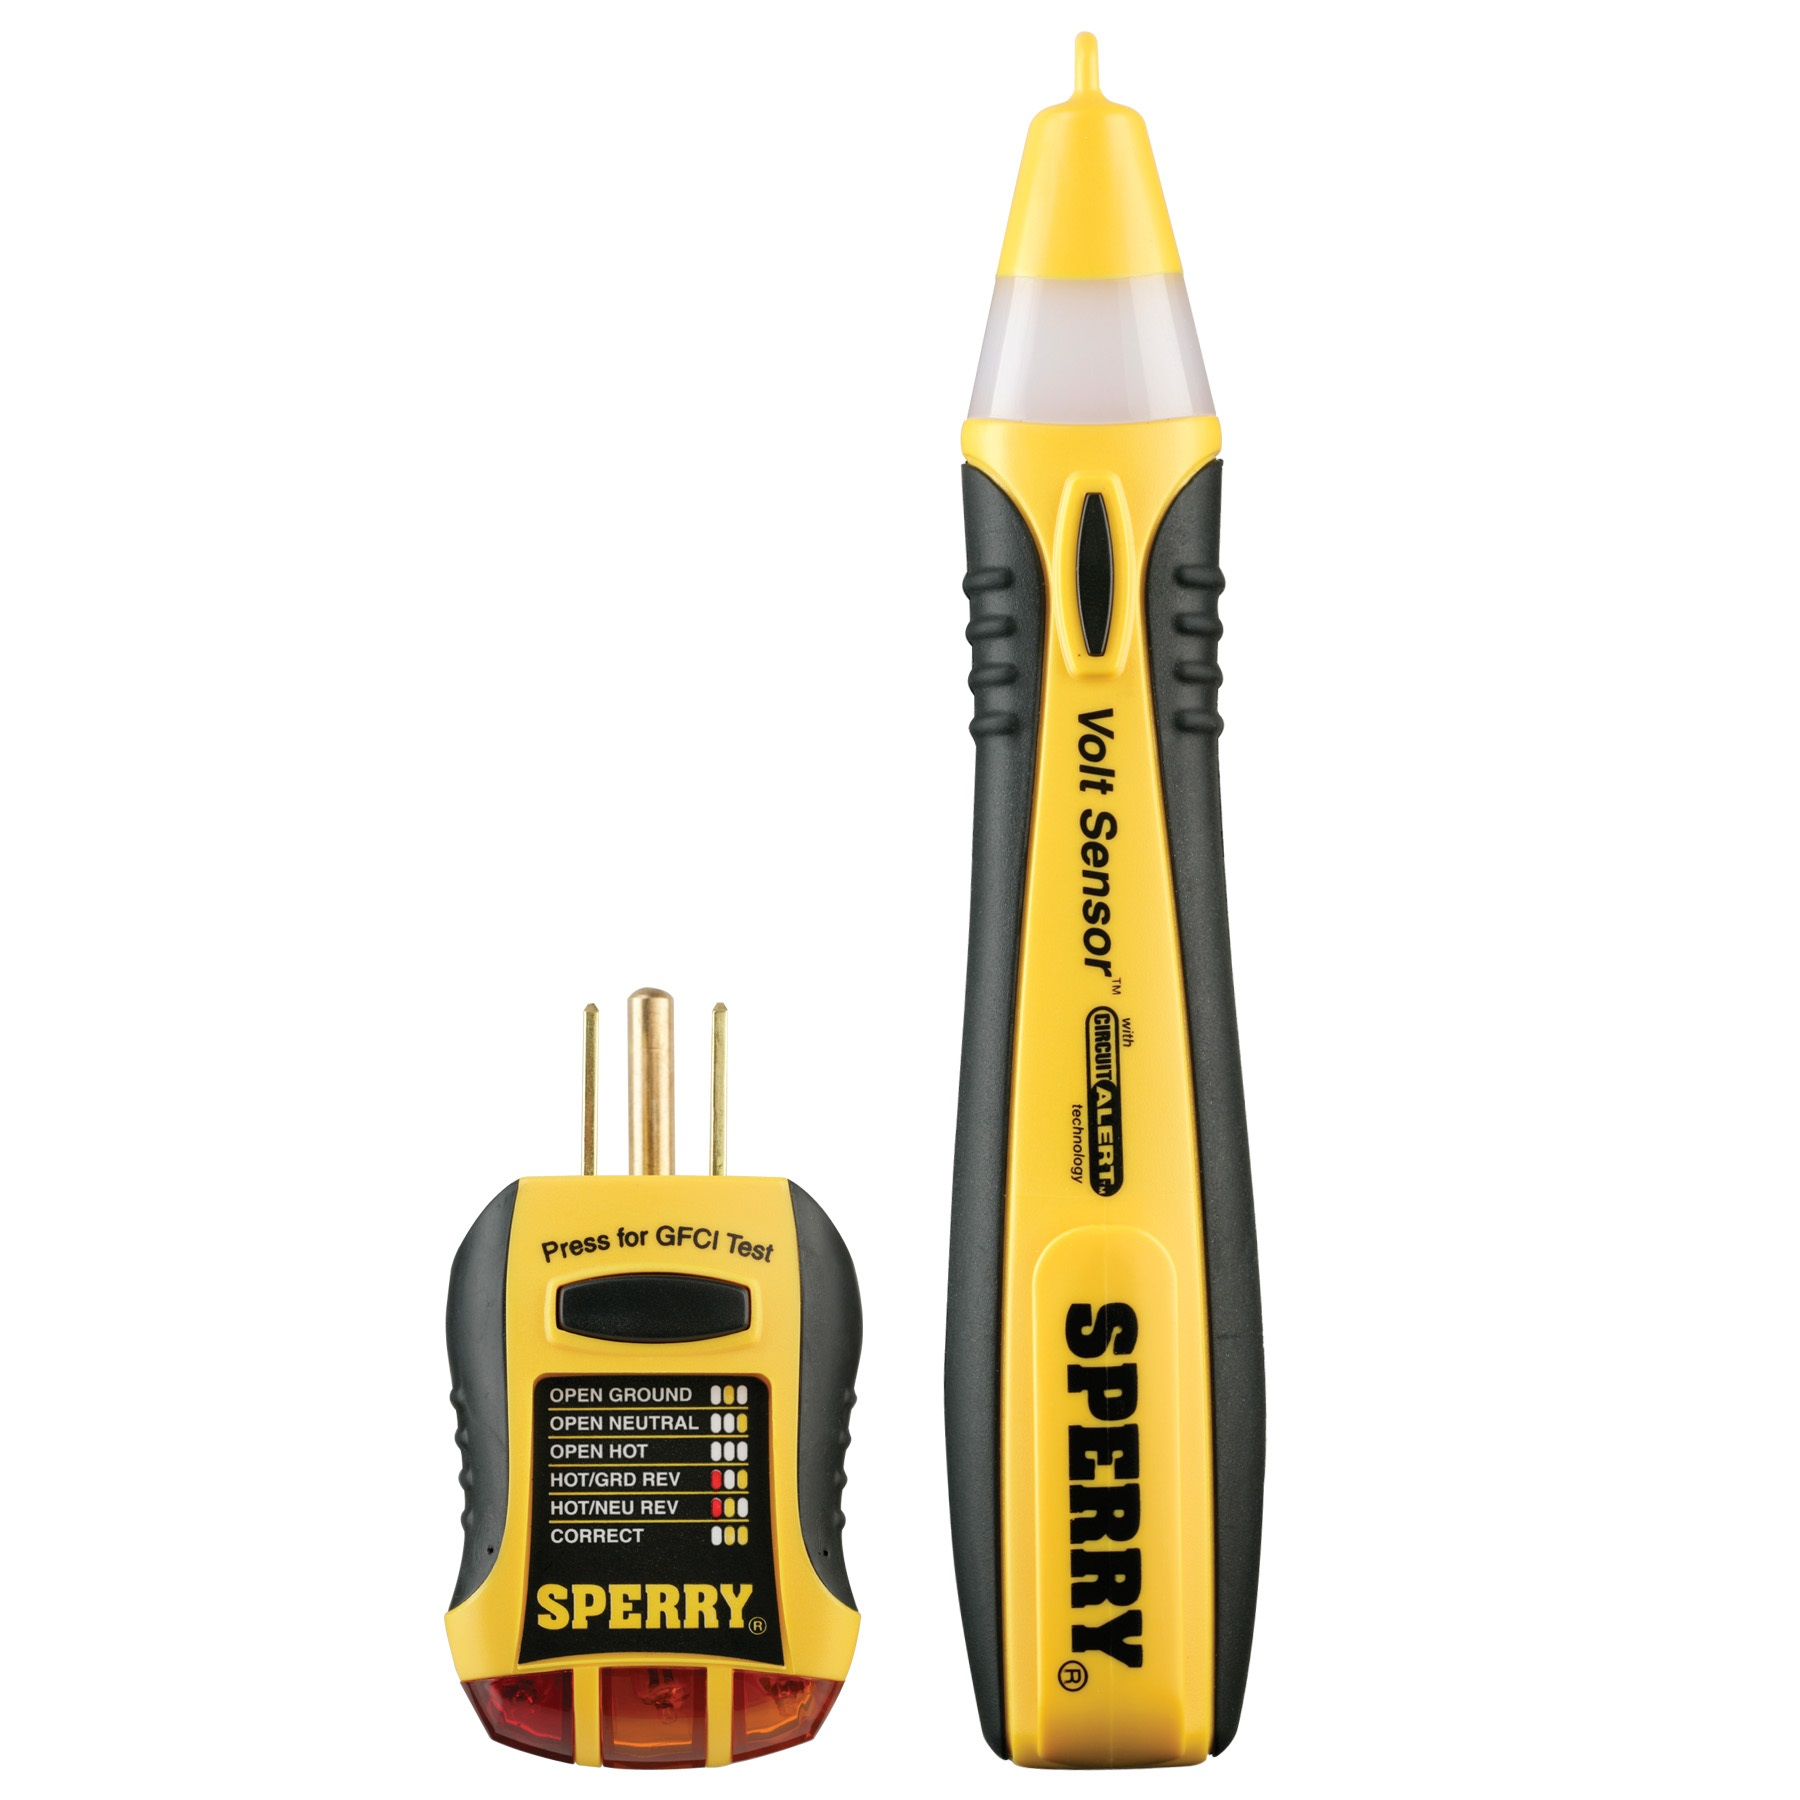 Sperry Instruments STK-001 2-Piece Tester Kit, includes a Non-Contact Voltage Tester and GFCI Outlet Tester